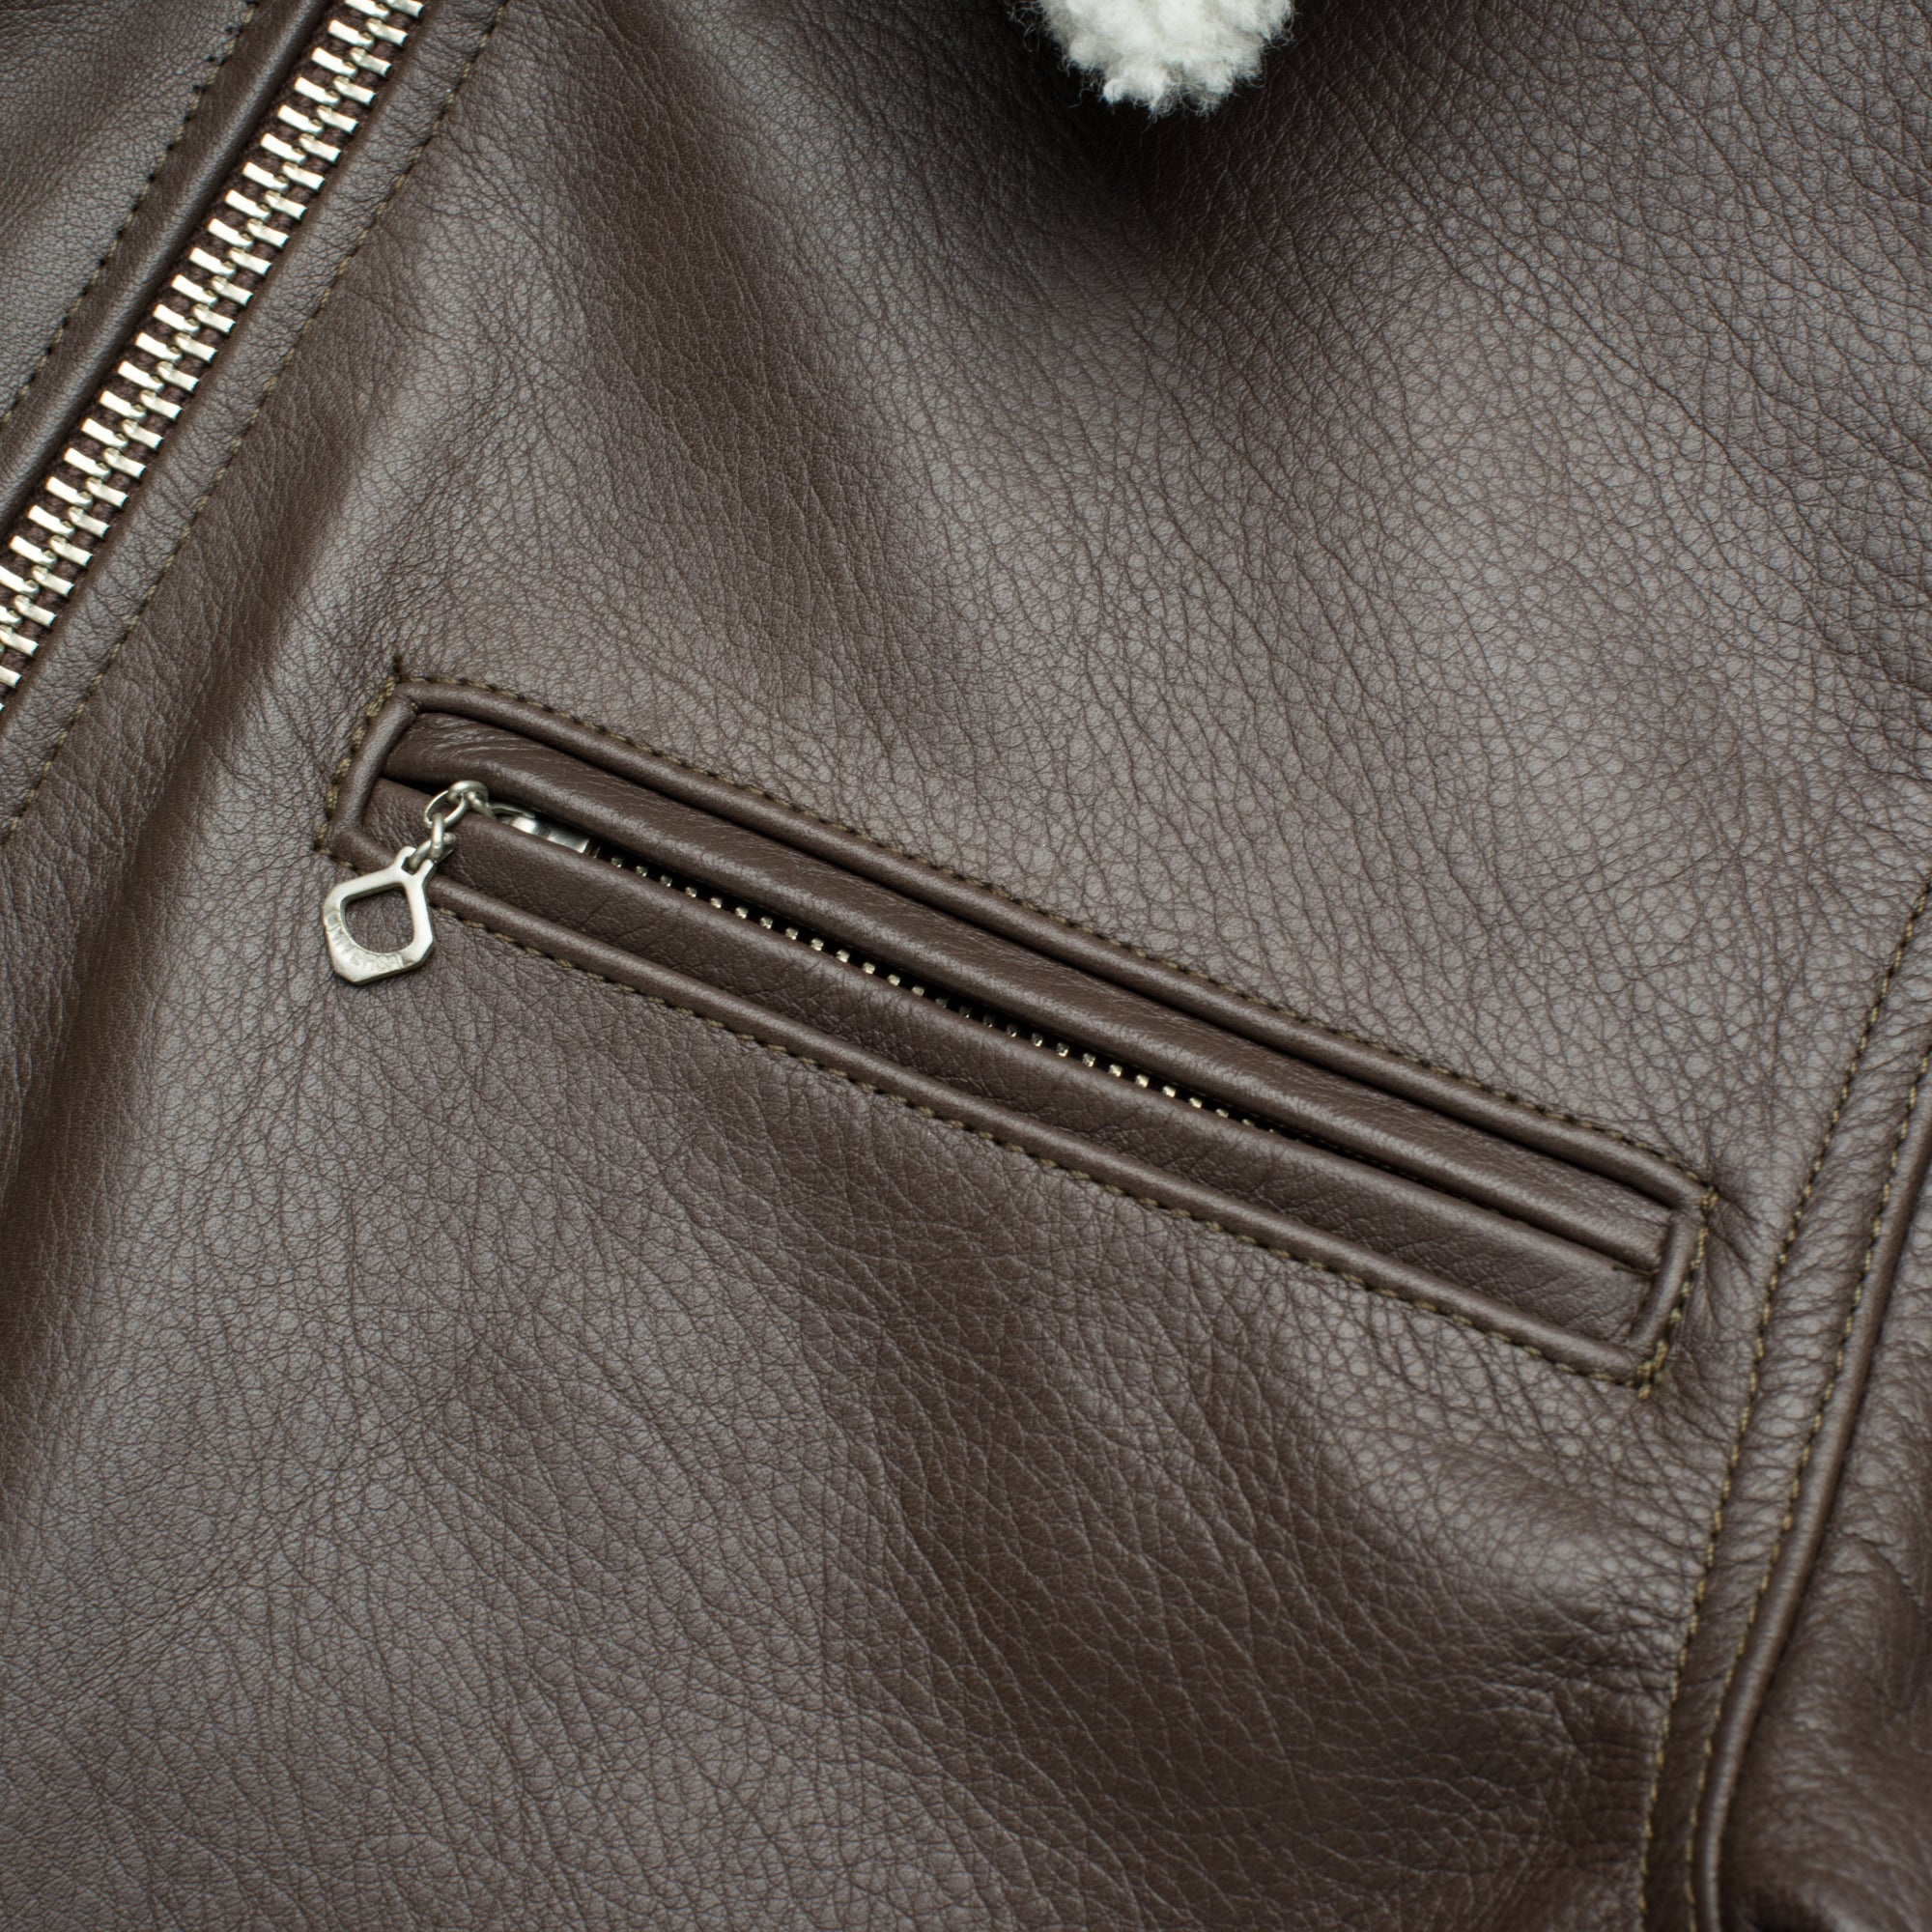 FJ1 Brown Leather Front Pocket